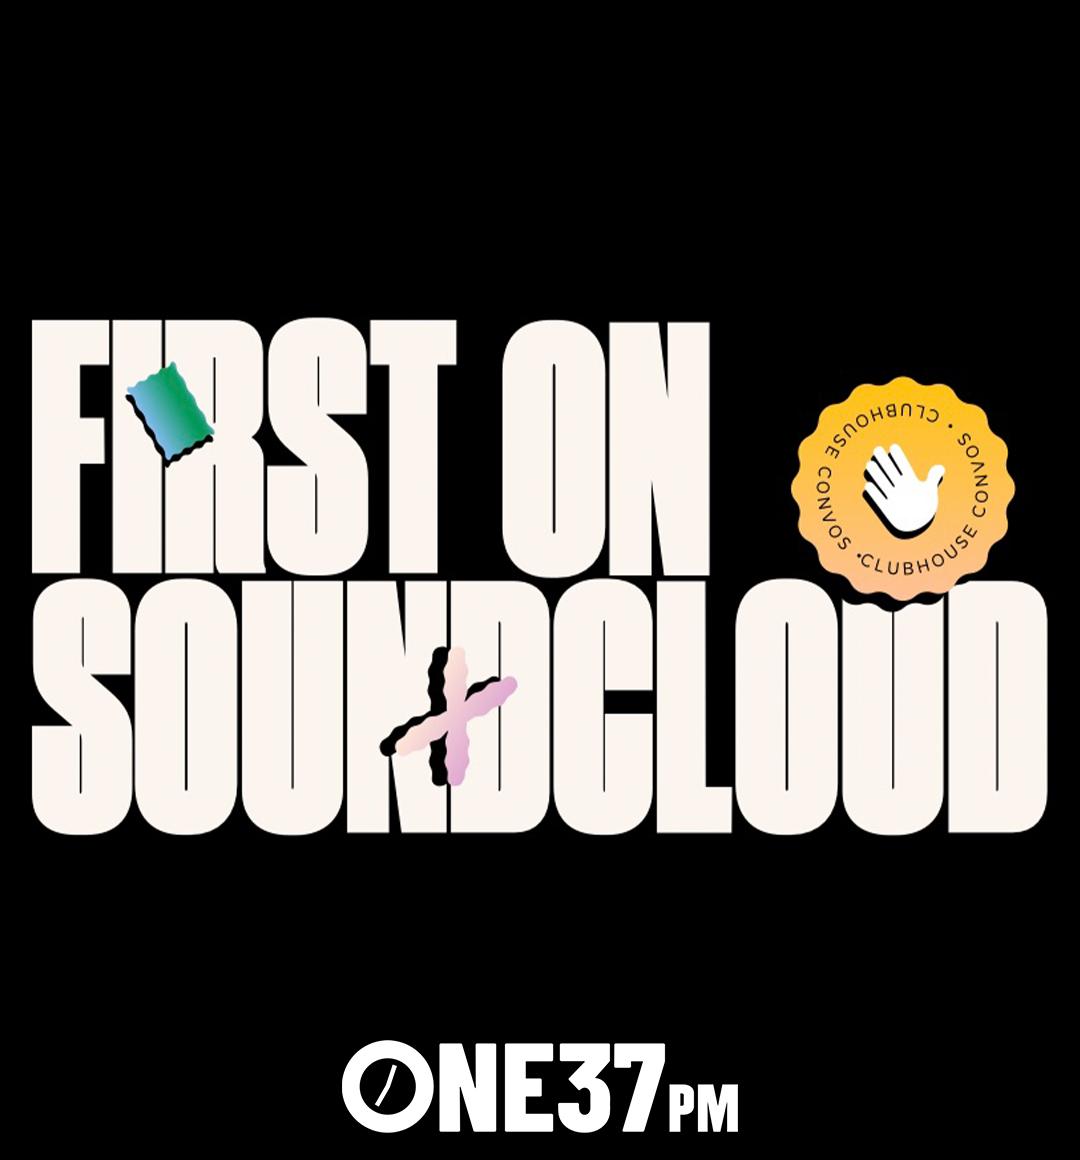 Firstonsoundcloud mobile